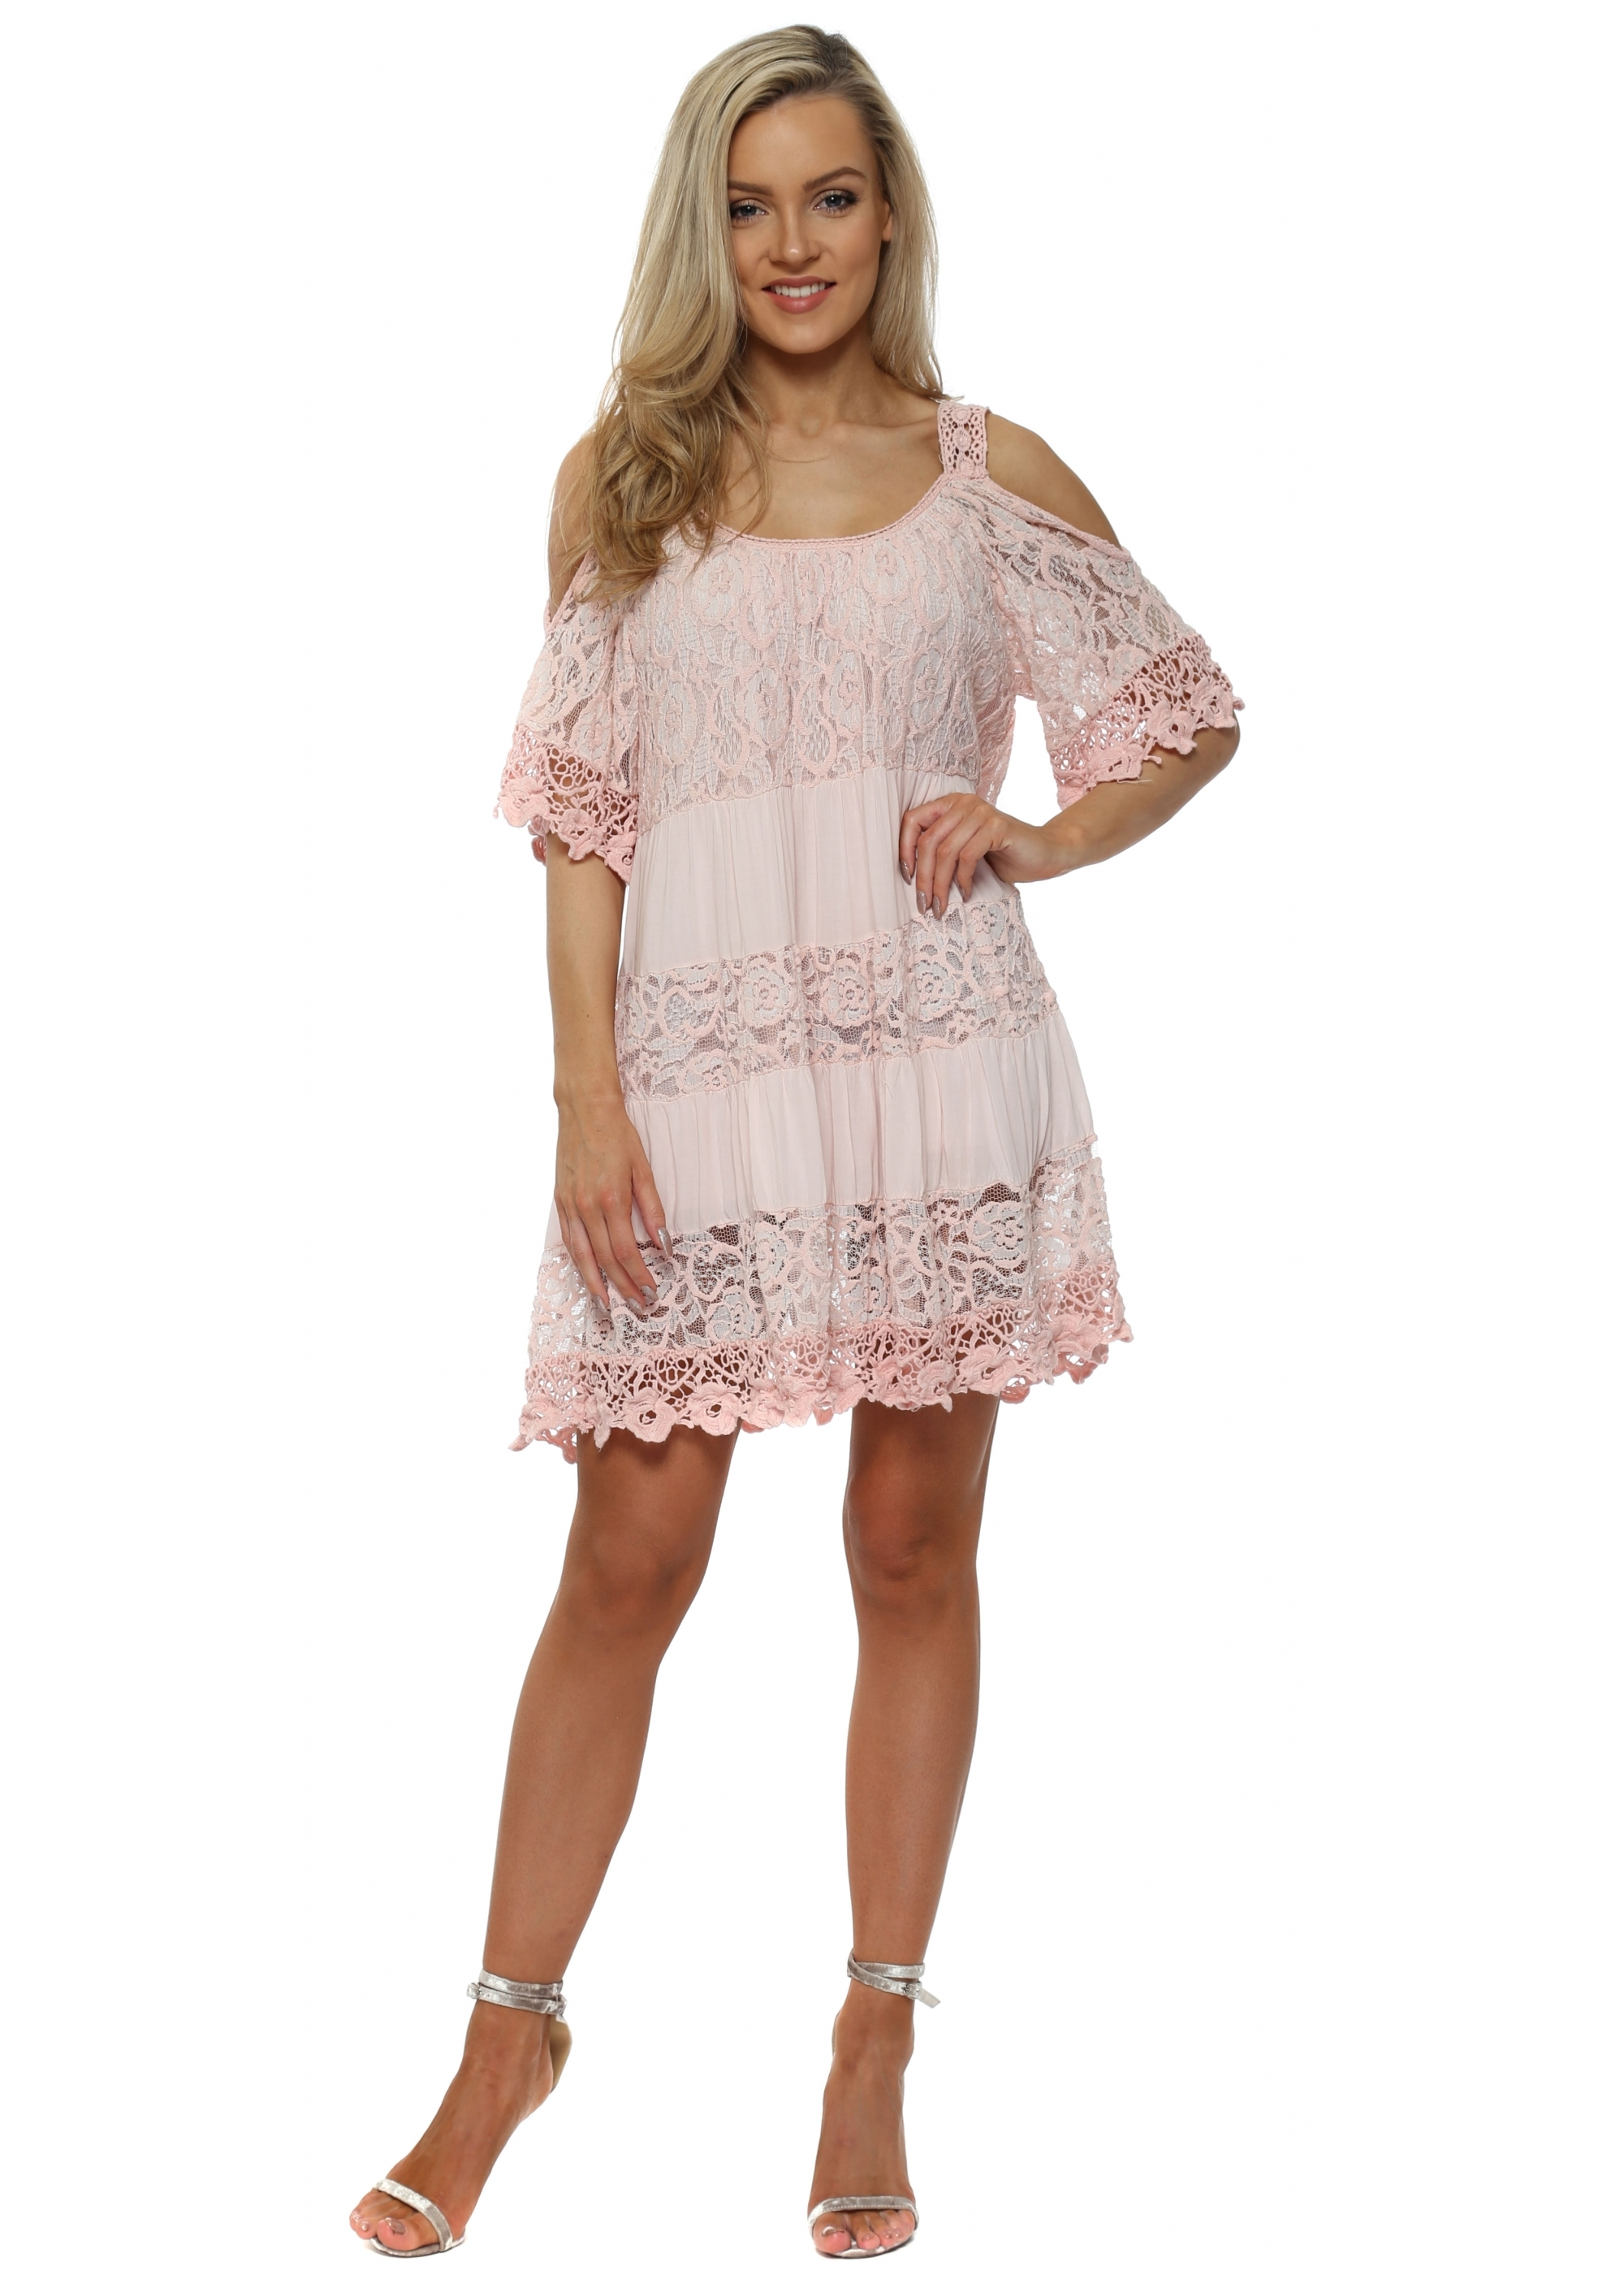 Are mistaken. pink lace summer dress apologise